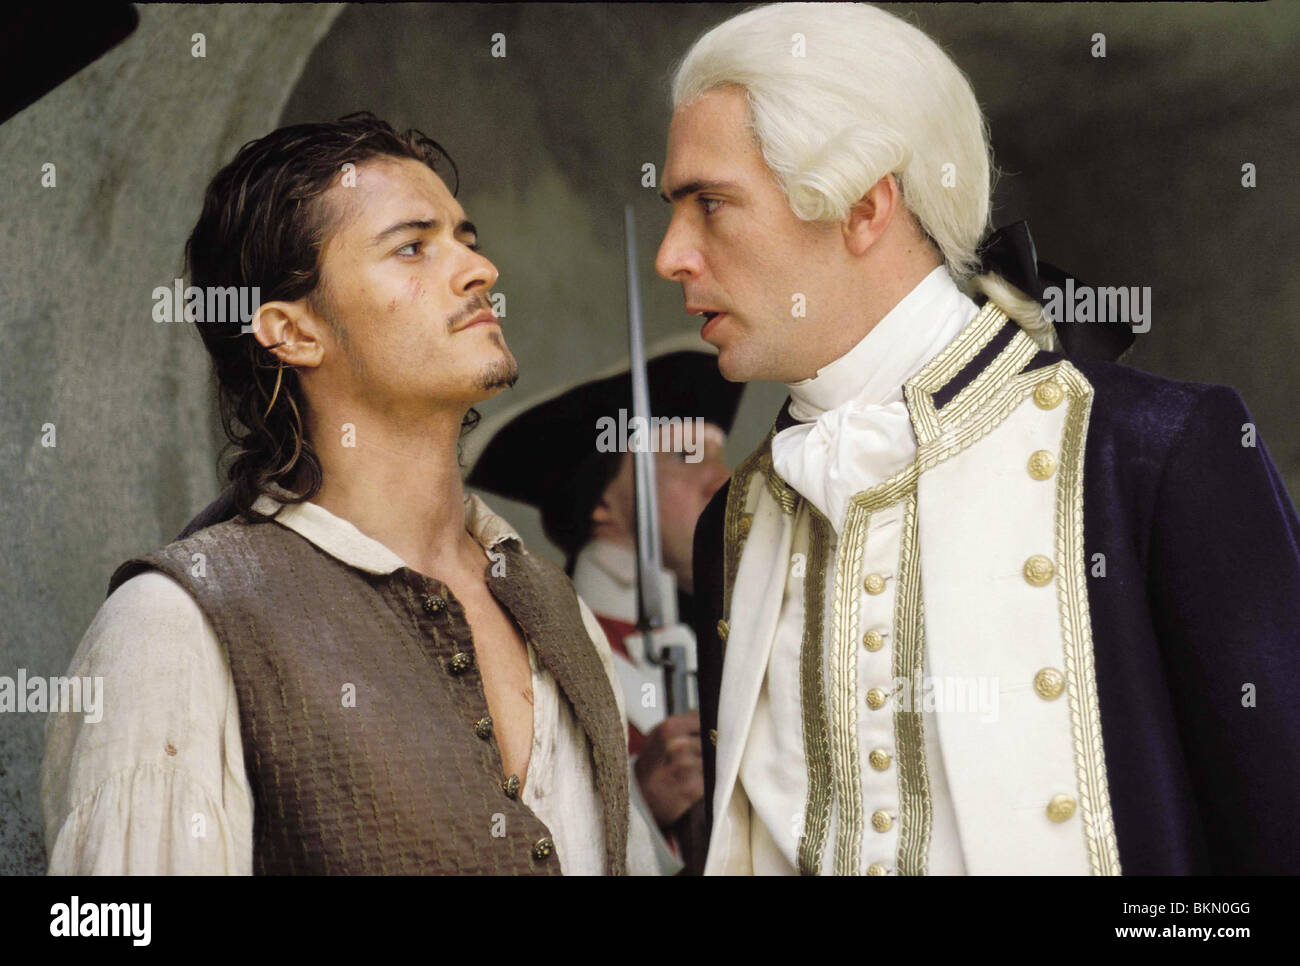 PIRATES OF THE CARIBBEAN: THE CURSE OF THE BLACK PEARL (2003) ORLANDO BLOOM, JACK DAVENPORT CREDIT DISNEY PIRC 001 - Stock Image